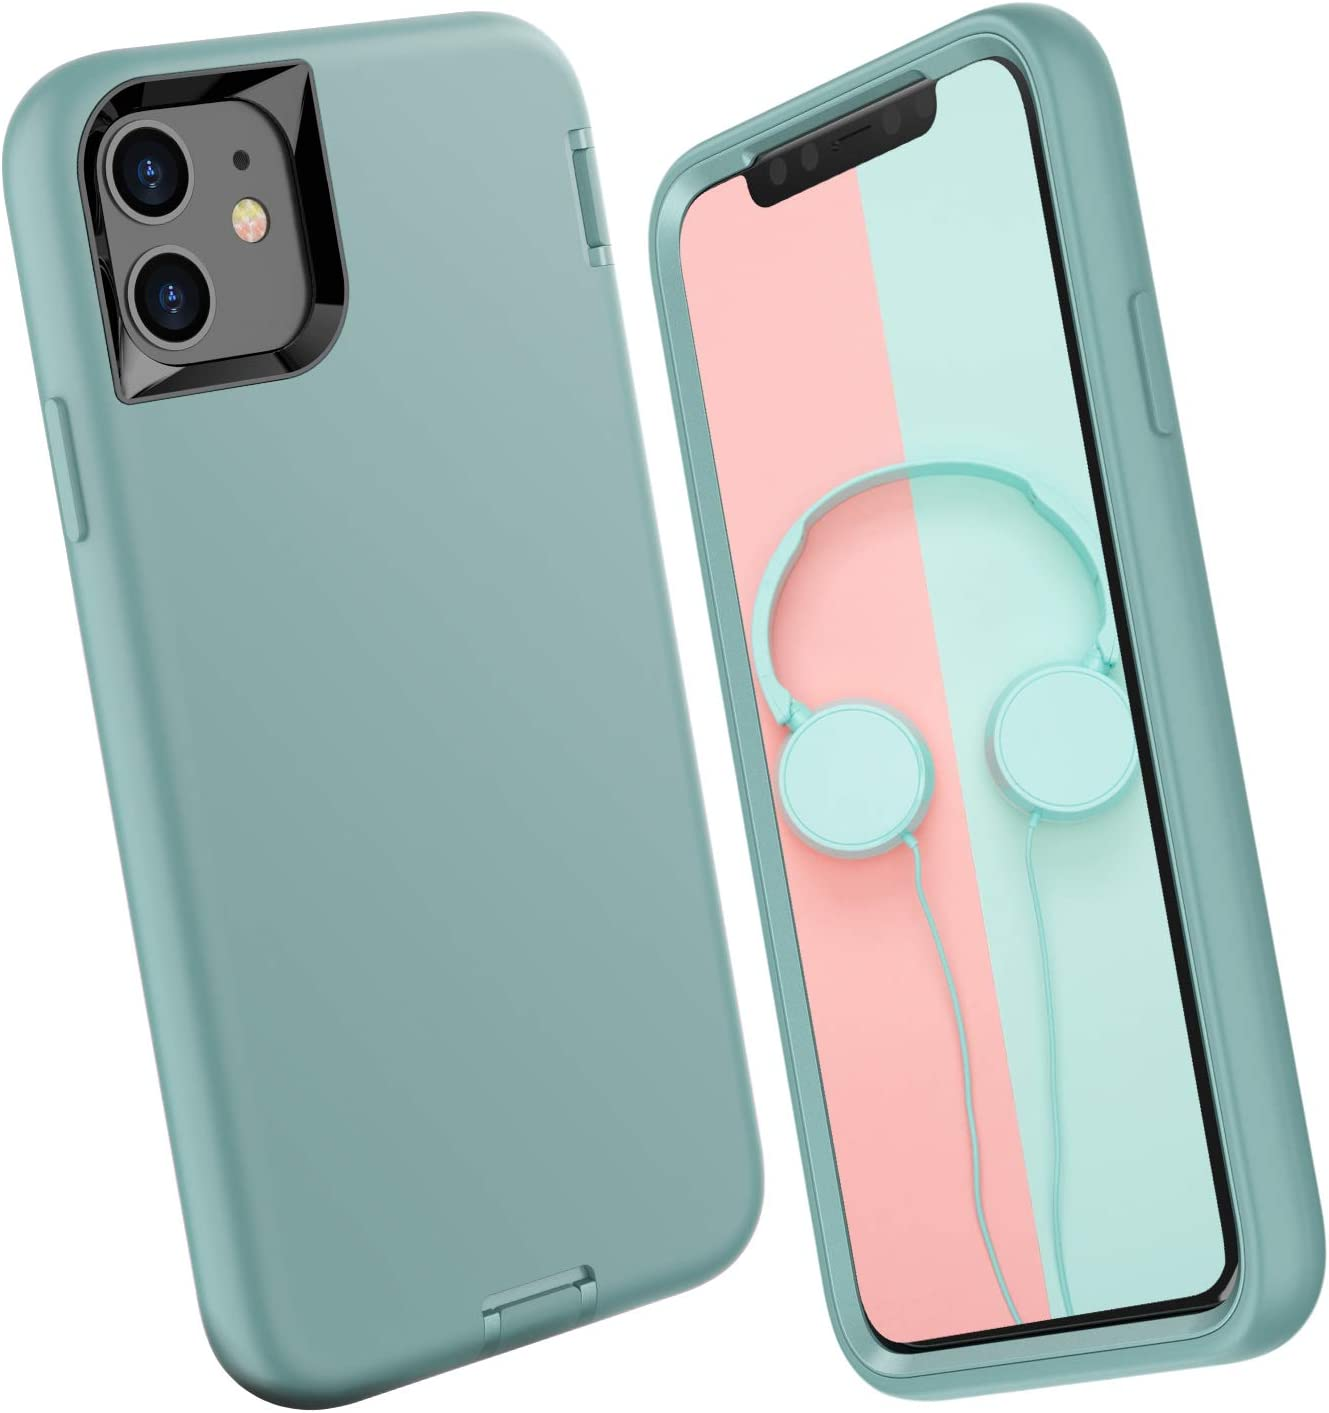 ORIbox Exalted Series Liquid Silicone iPhone 11 Case, Soft-Touch Finish of The Liquid Silicone Exterior Feels, No Regret Case for iPhone 11 for Women & Men, Green